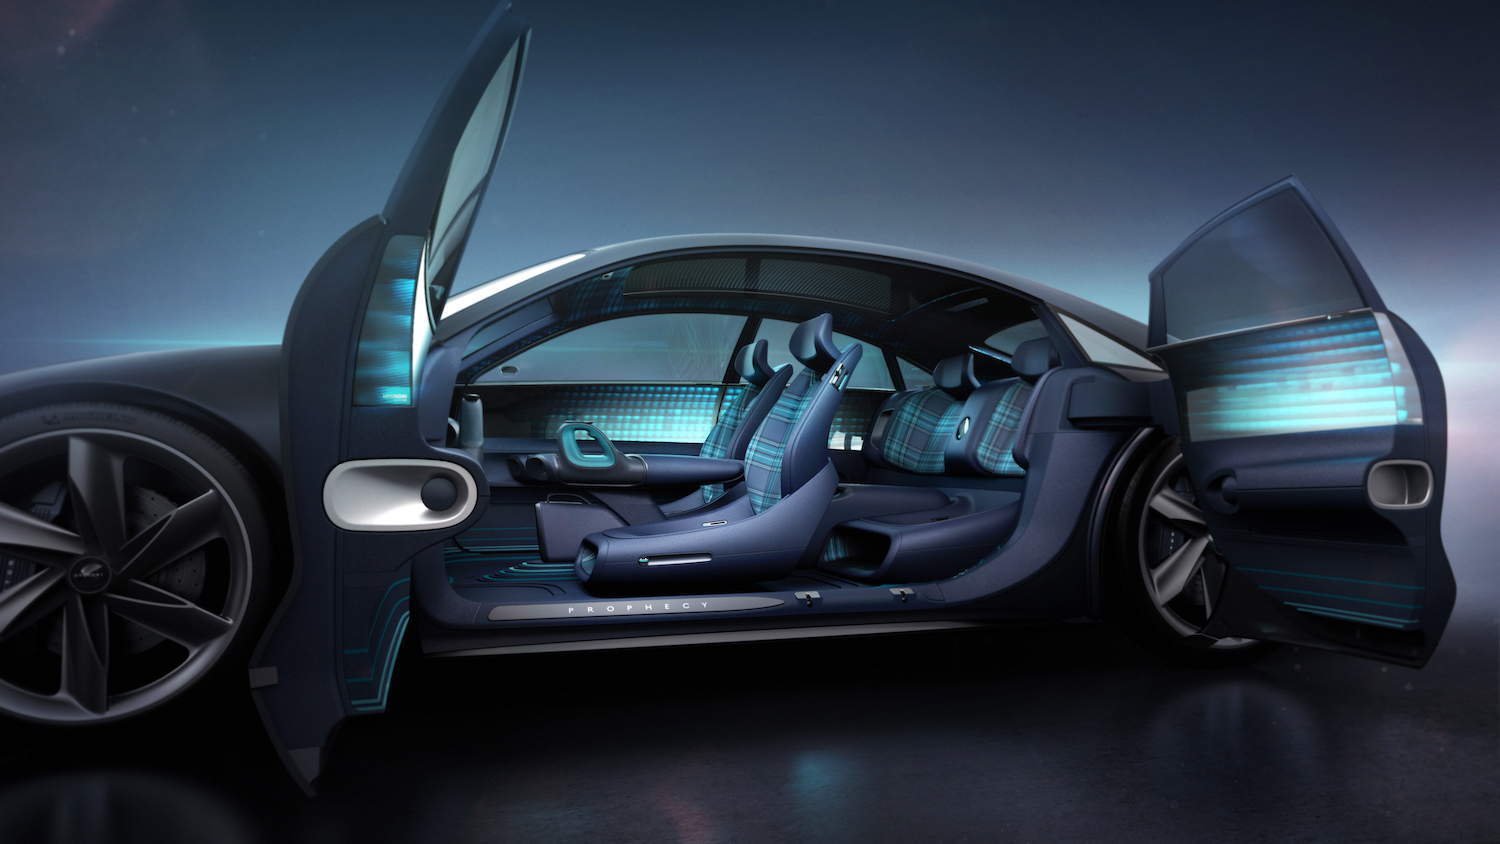 Hyundai Prophecy Concept EV side-view open door interior